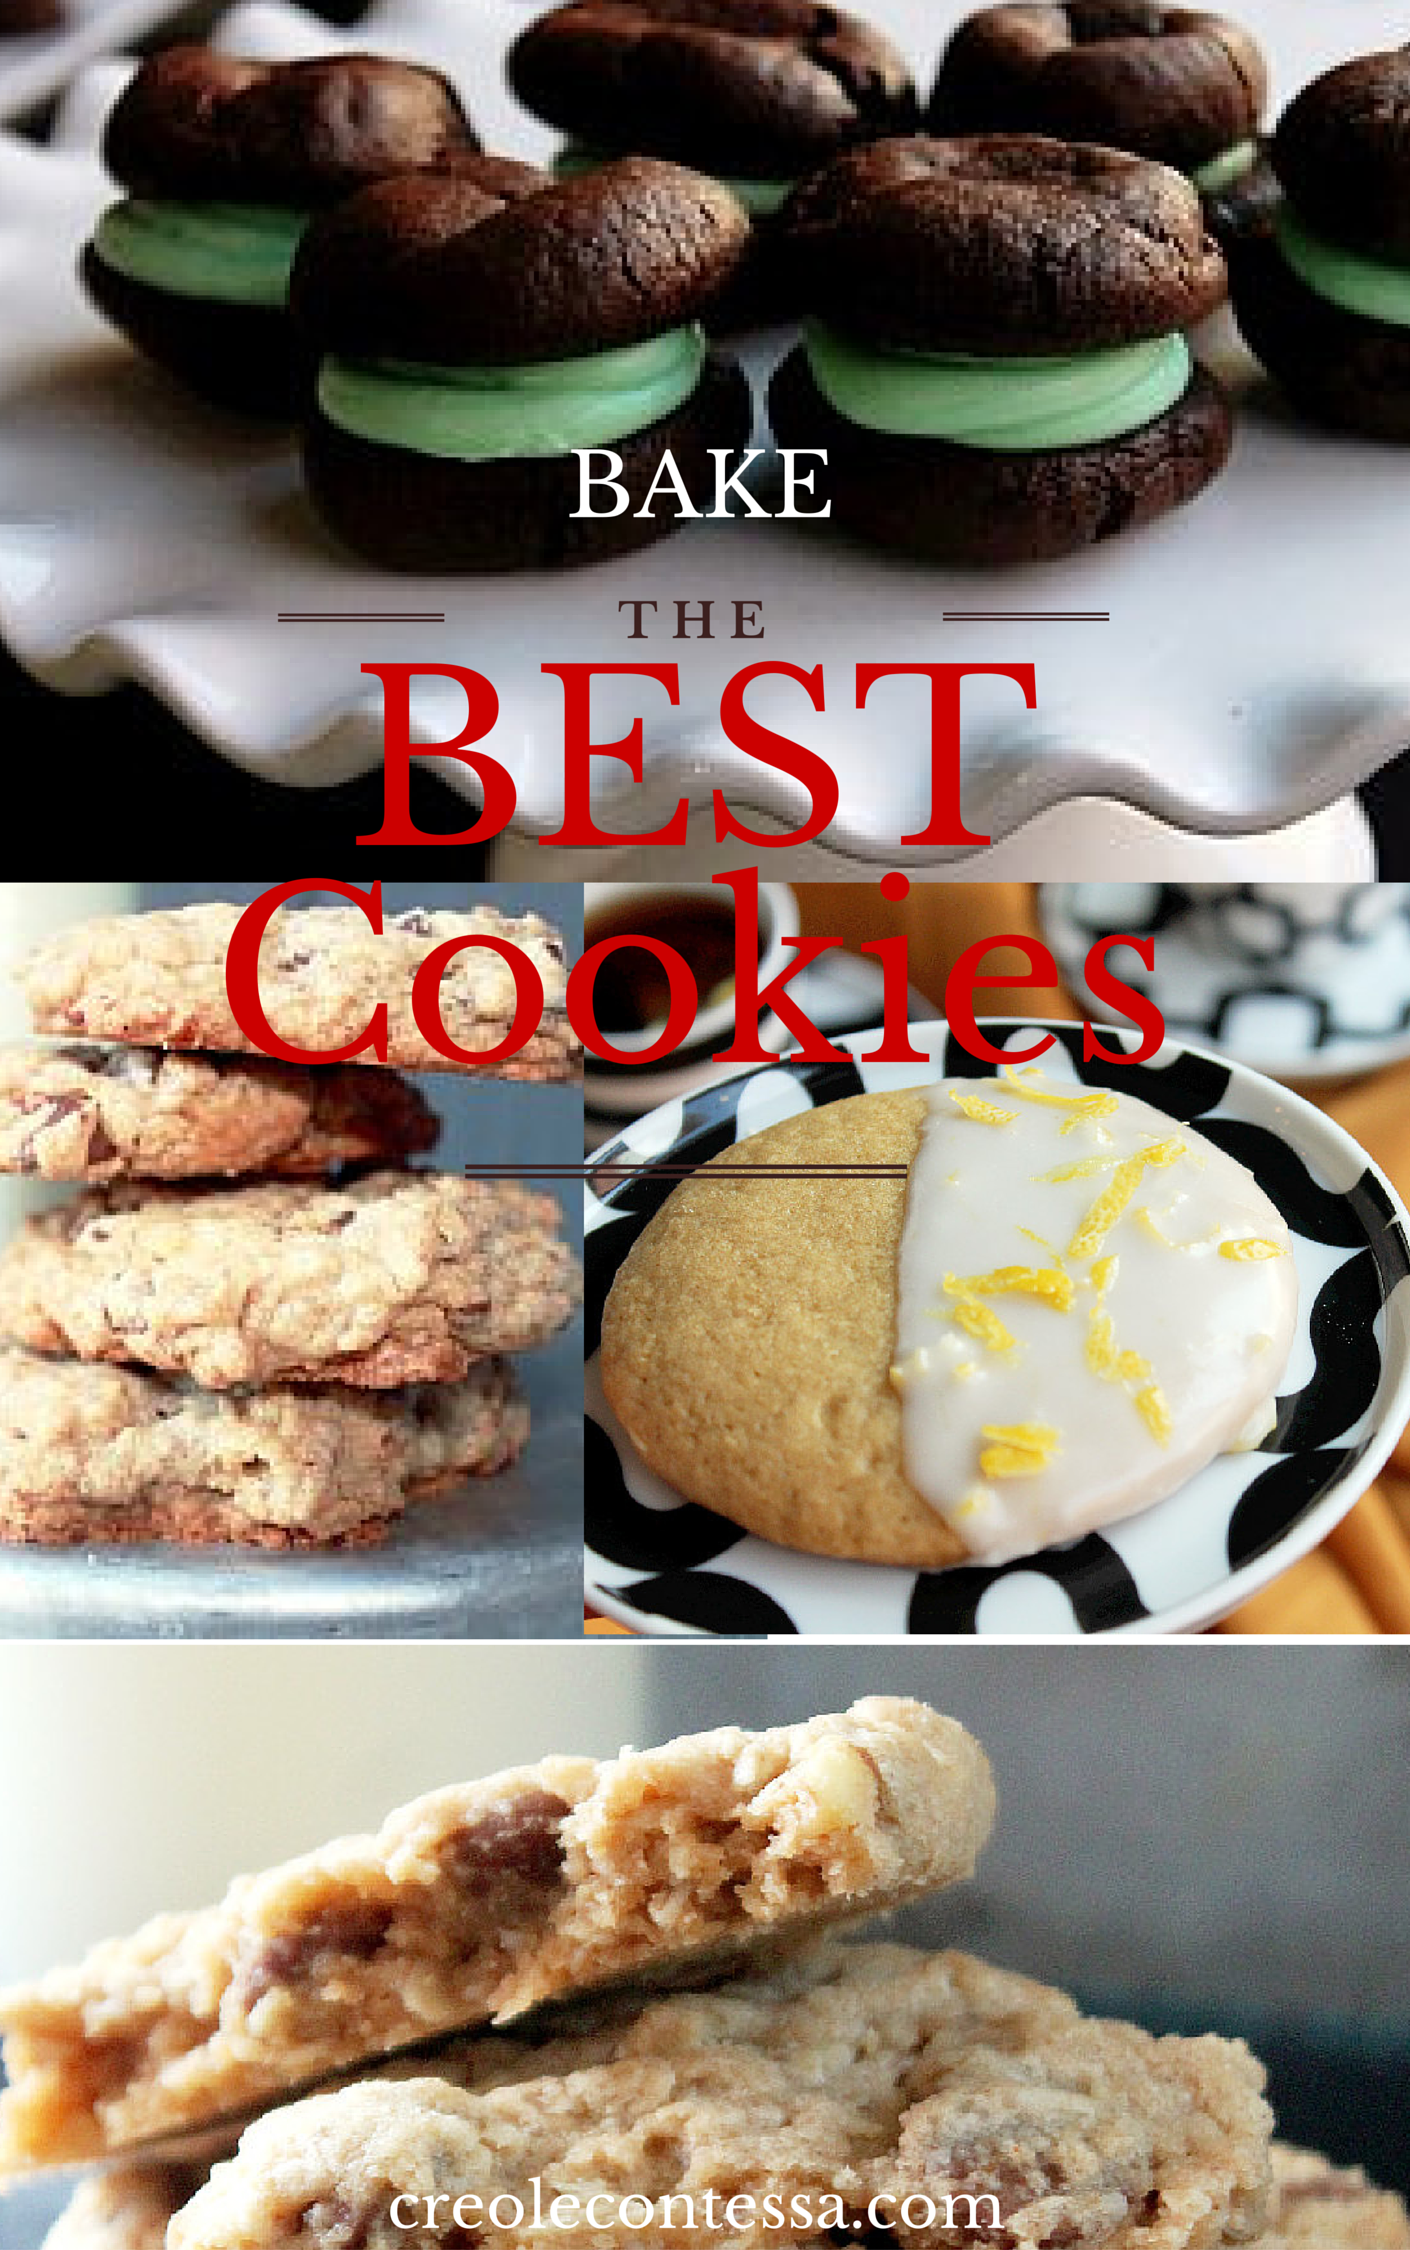 Bake the Best Cookies-Creole Contessa